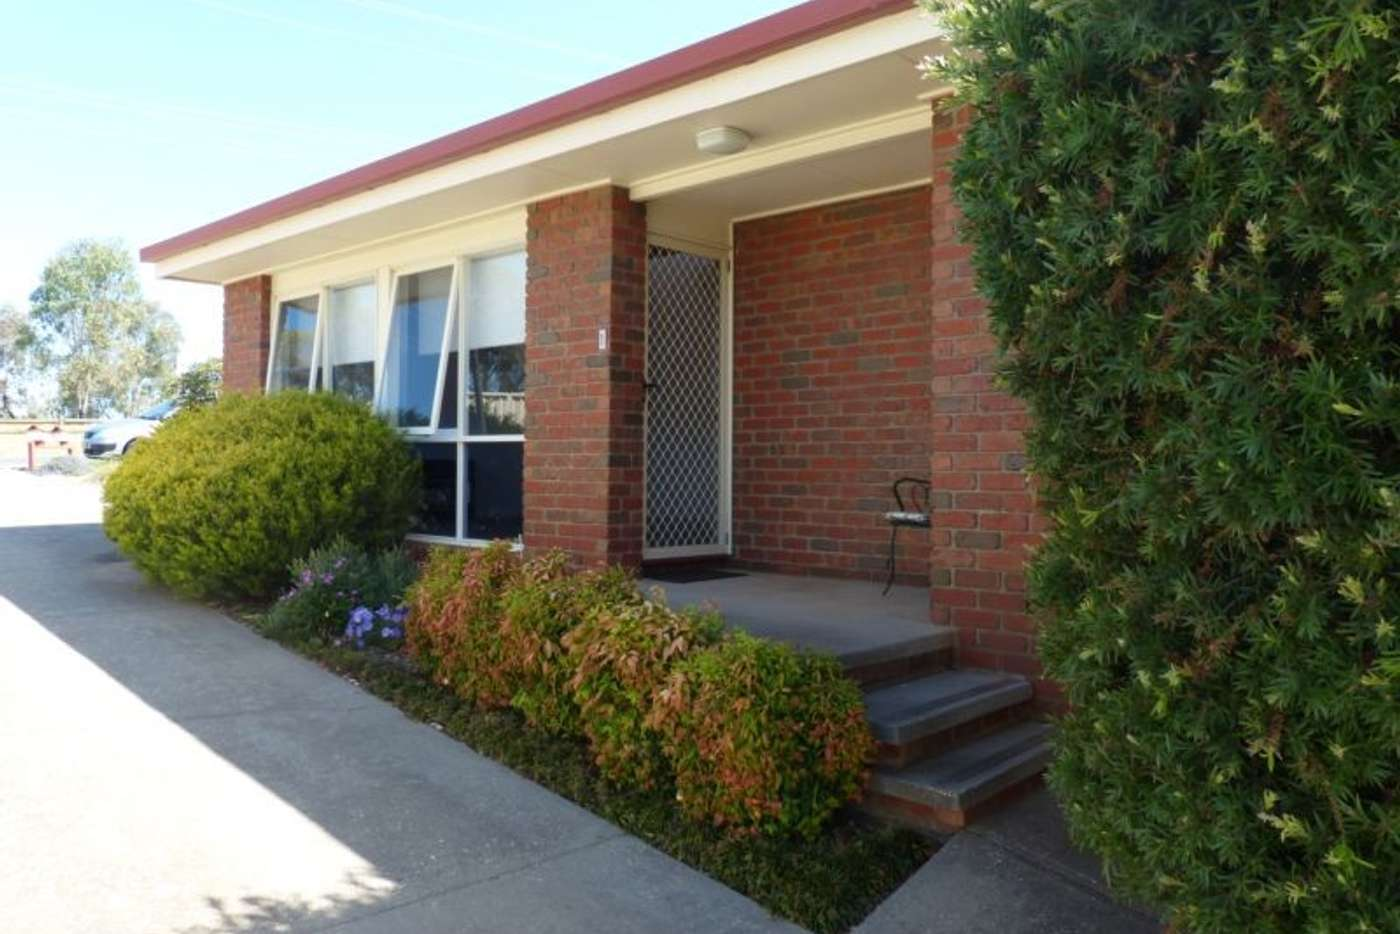 Main view of Homely townhouse listing, 1/383 Day Street, Albury NSW 2640